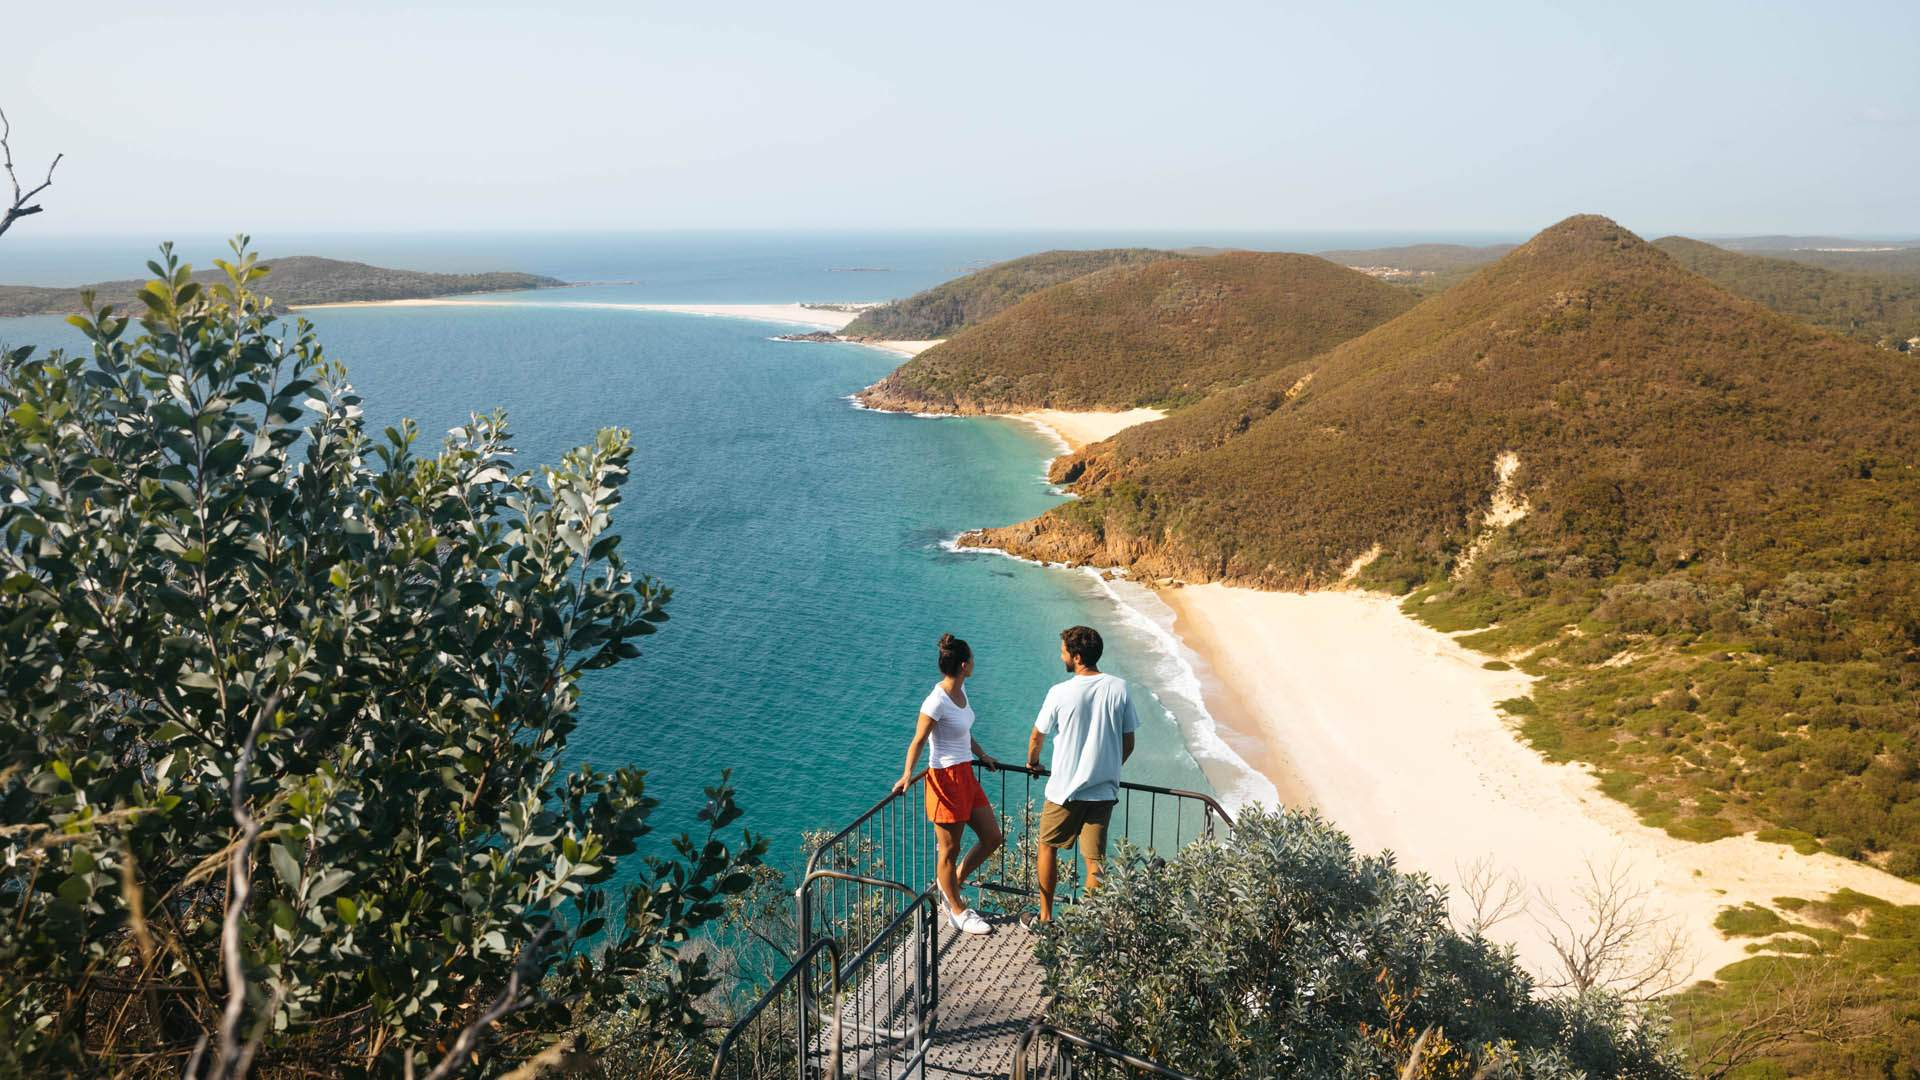 A Winter Escapist's Guide to Port Stephens and Its Surrounds